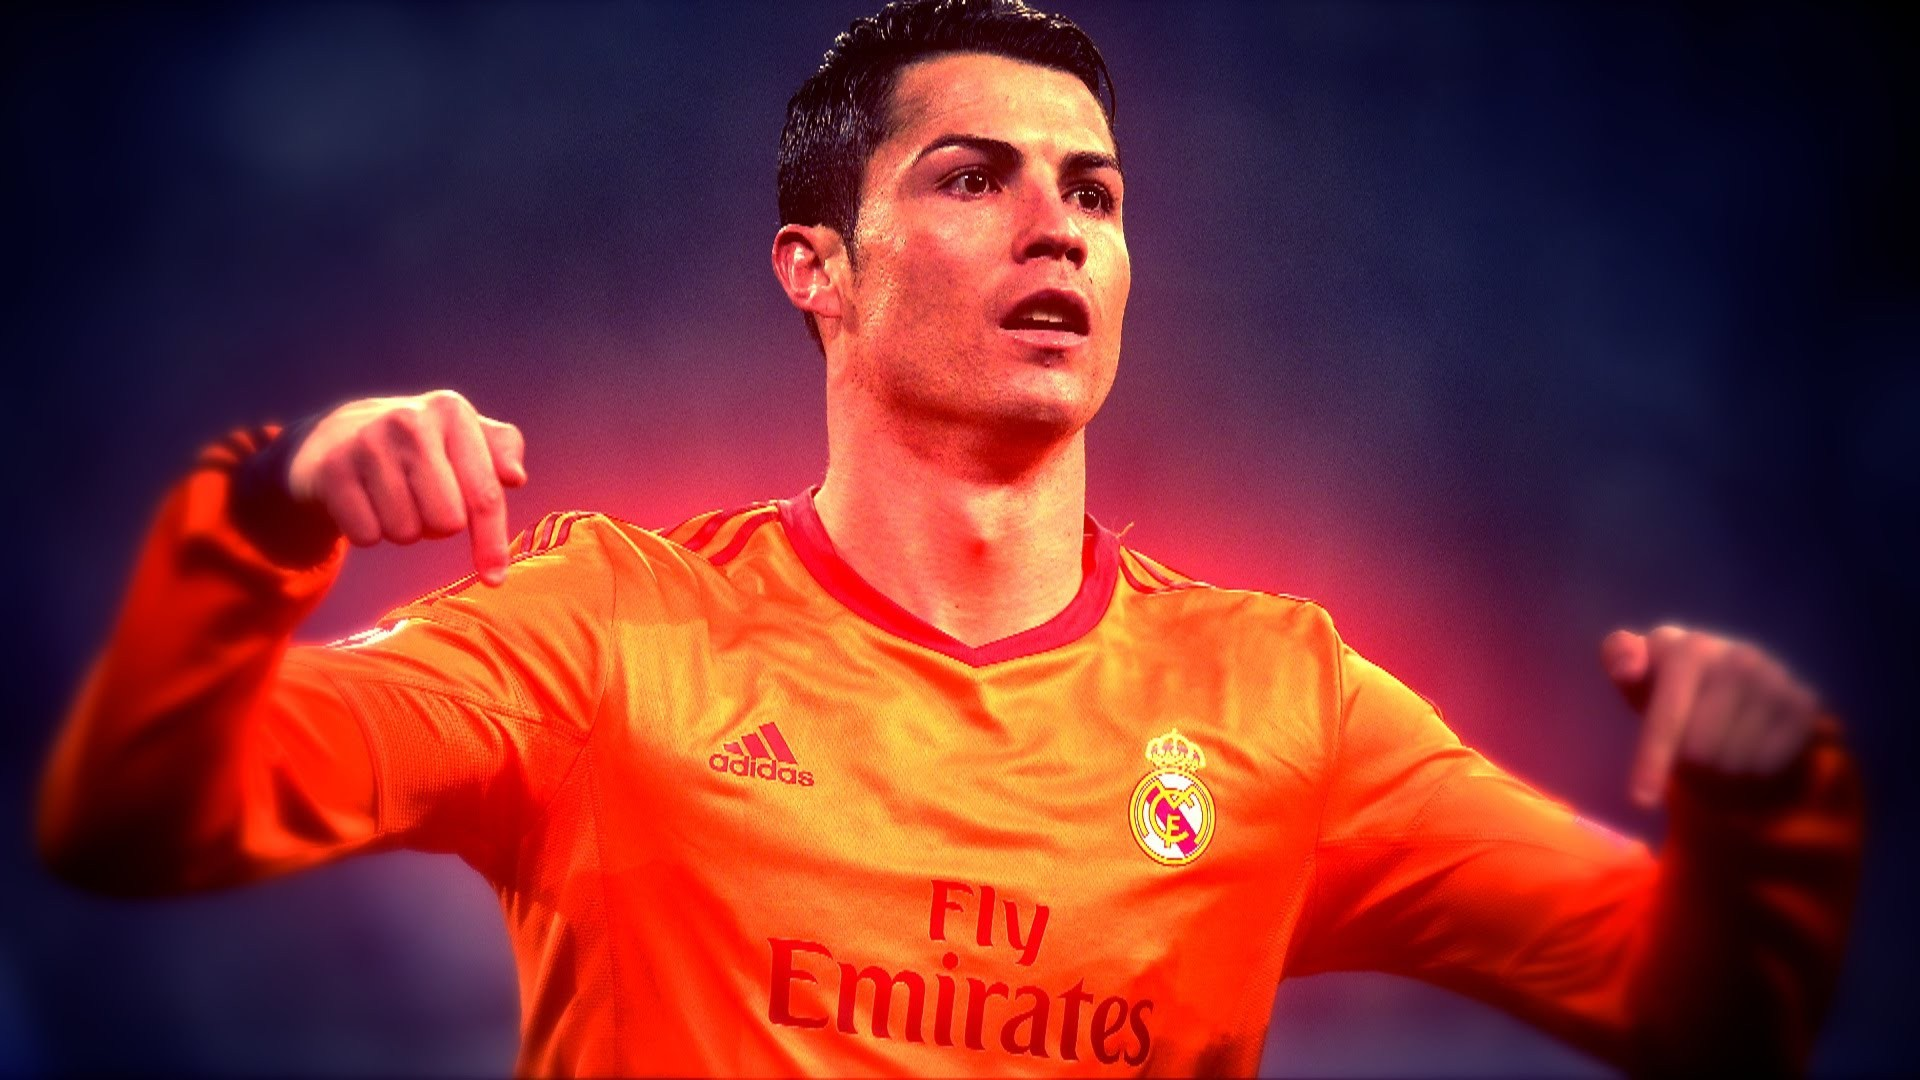 Collection of Ronaldo Wallpapers on HDWallpapers 1080×675 Cristiano Ronaldo  Wallpaper Hd (61 Wallpapers